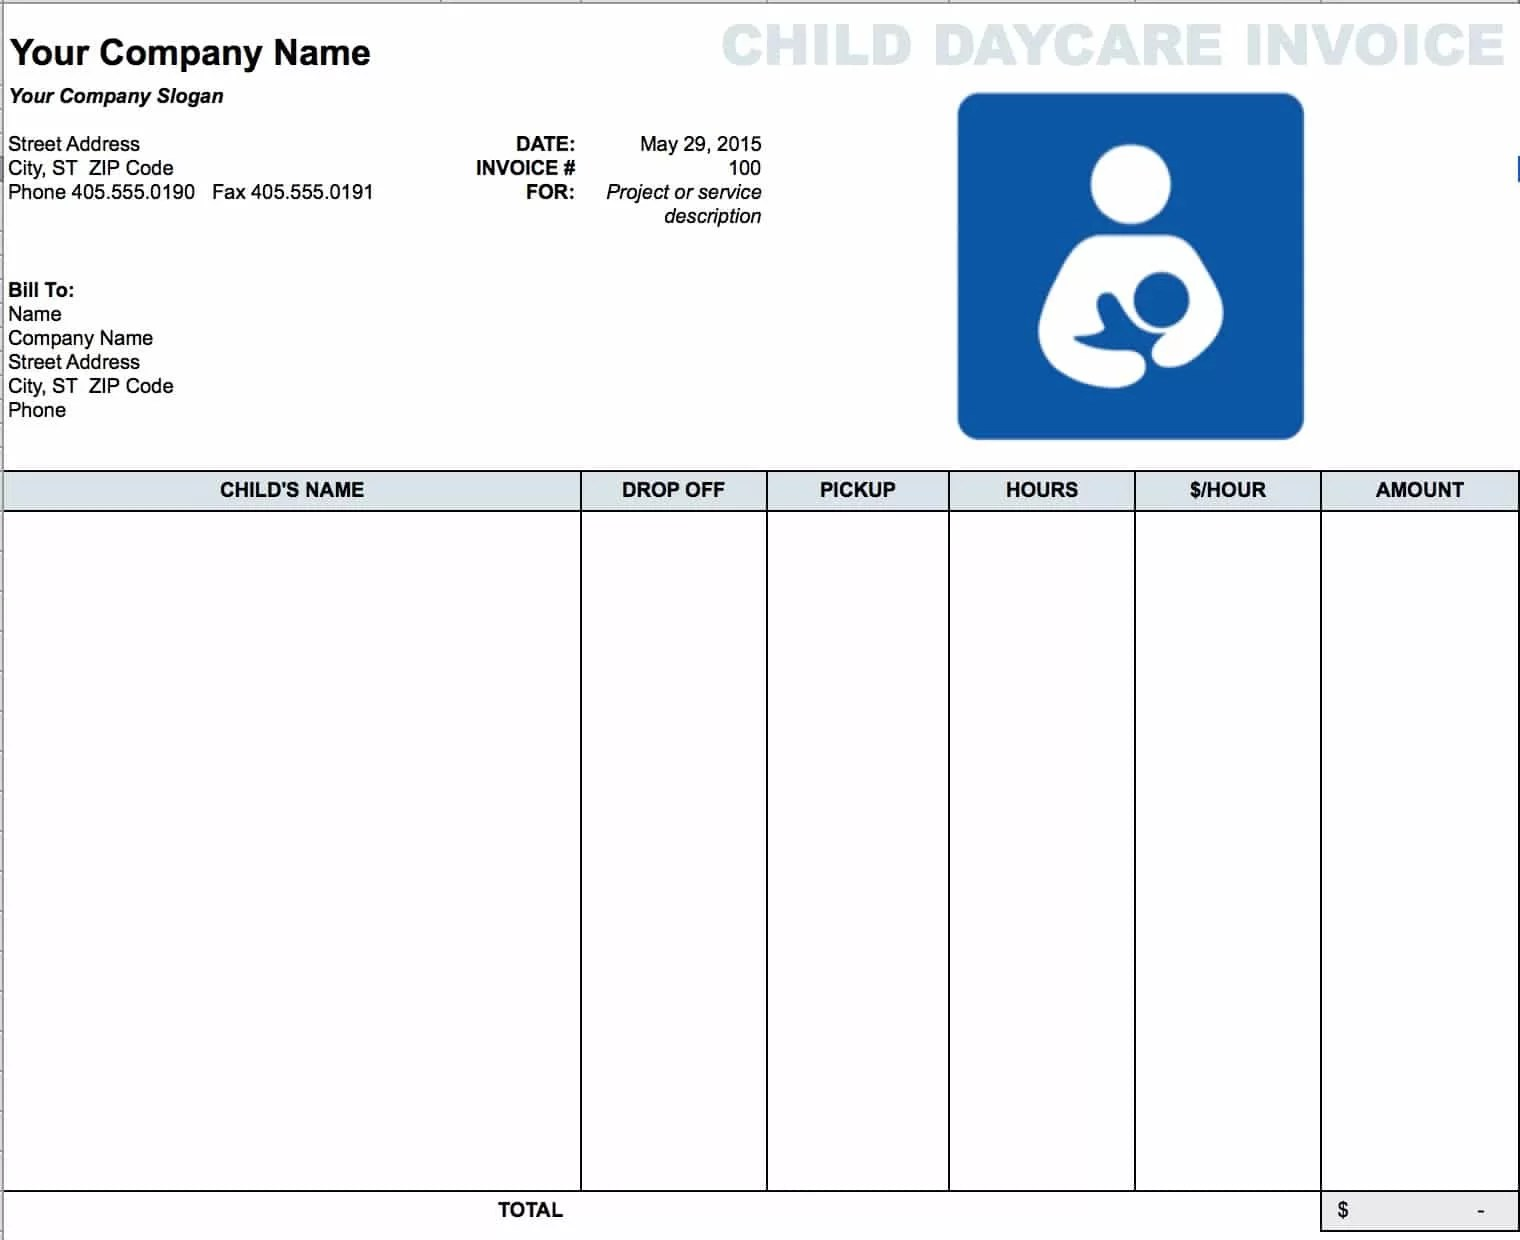 Daycare Child Invoice Template Download Free Blank